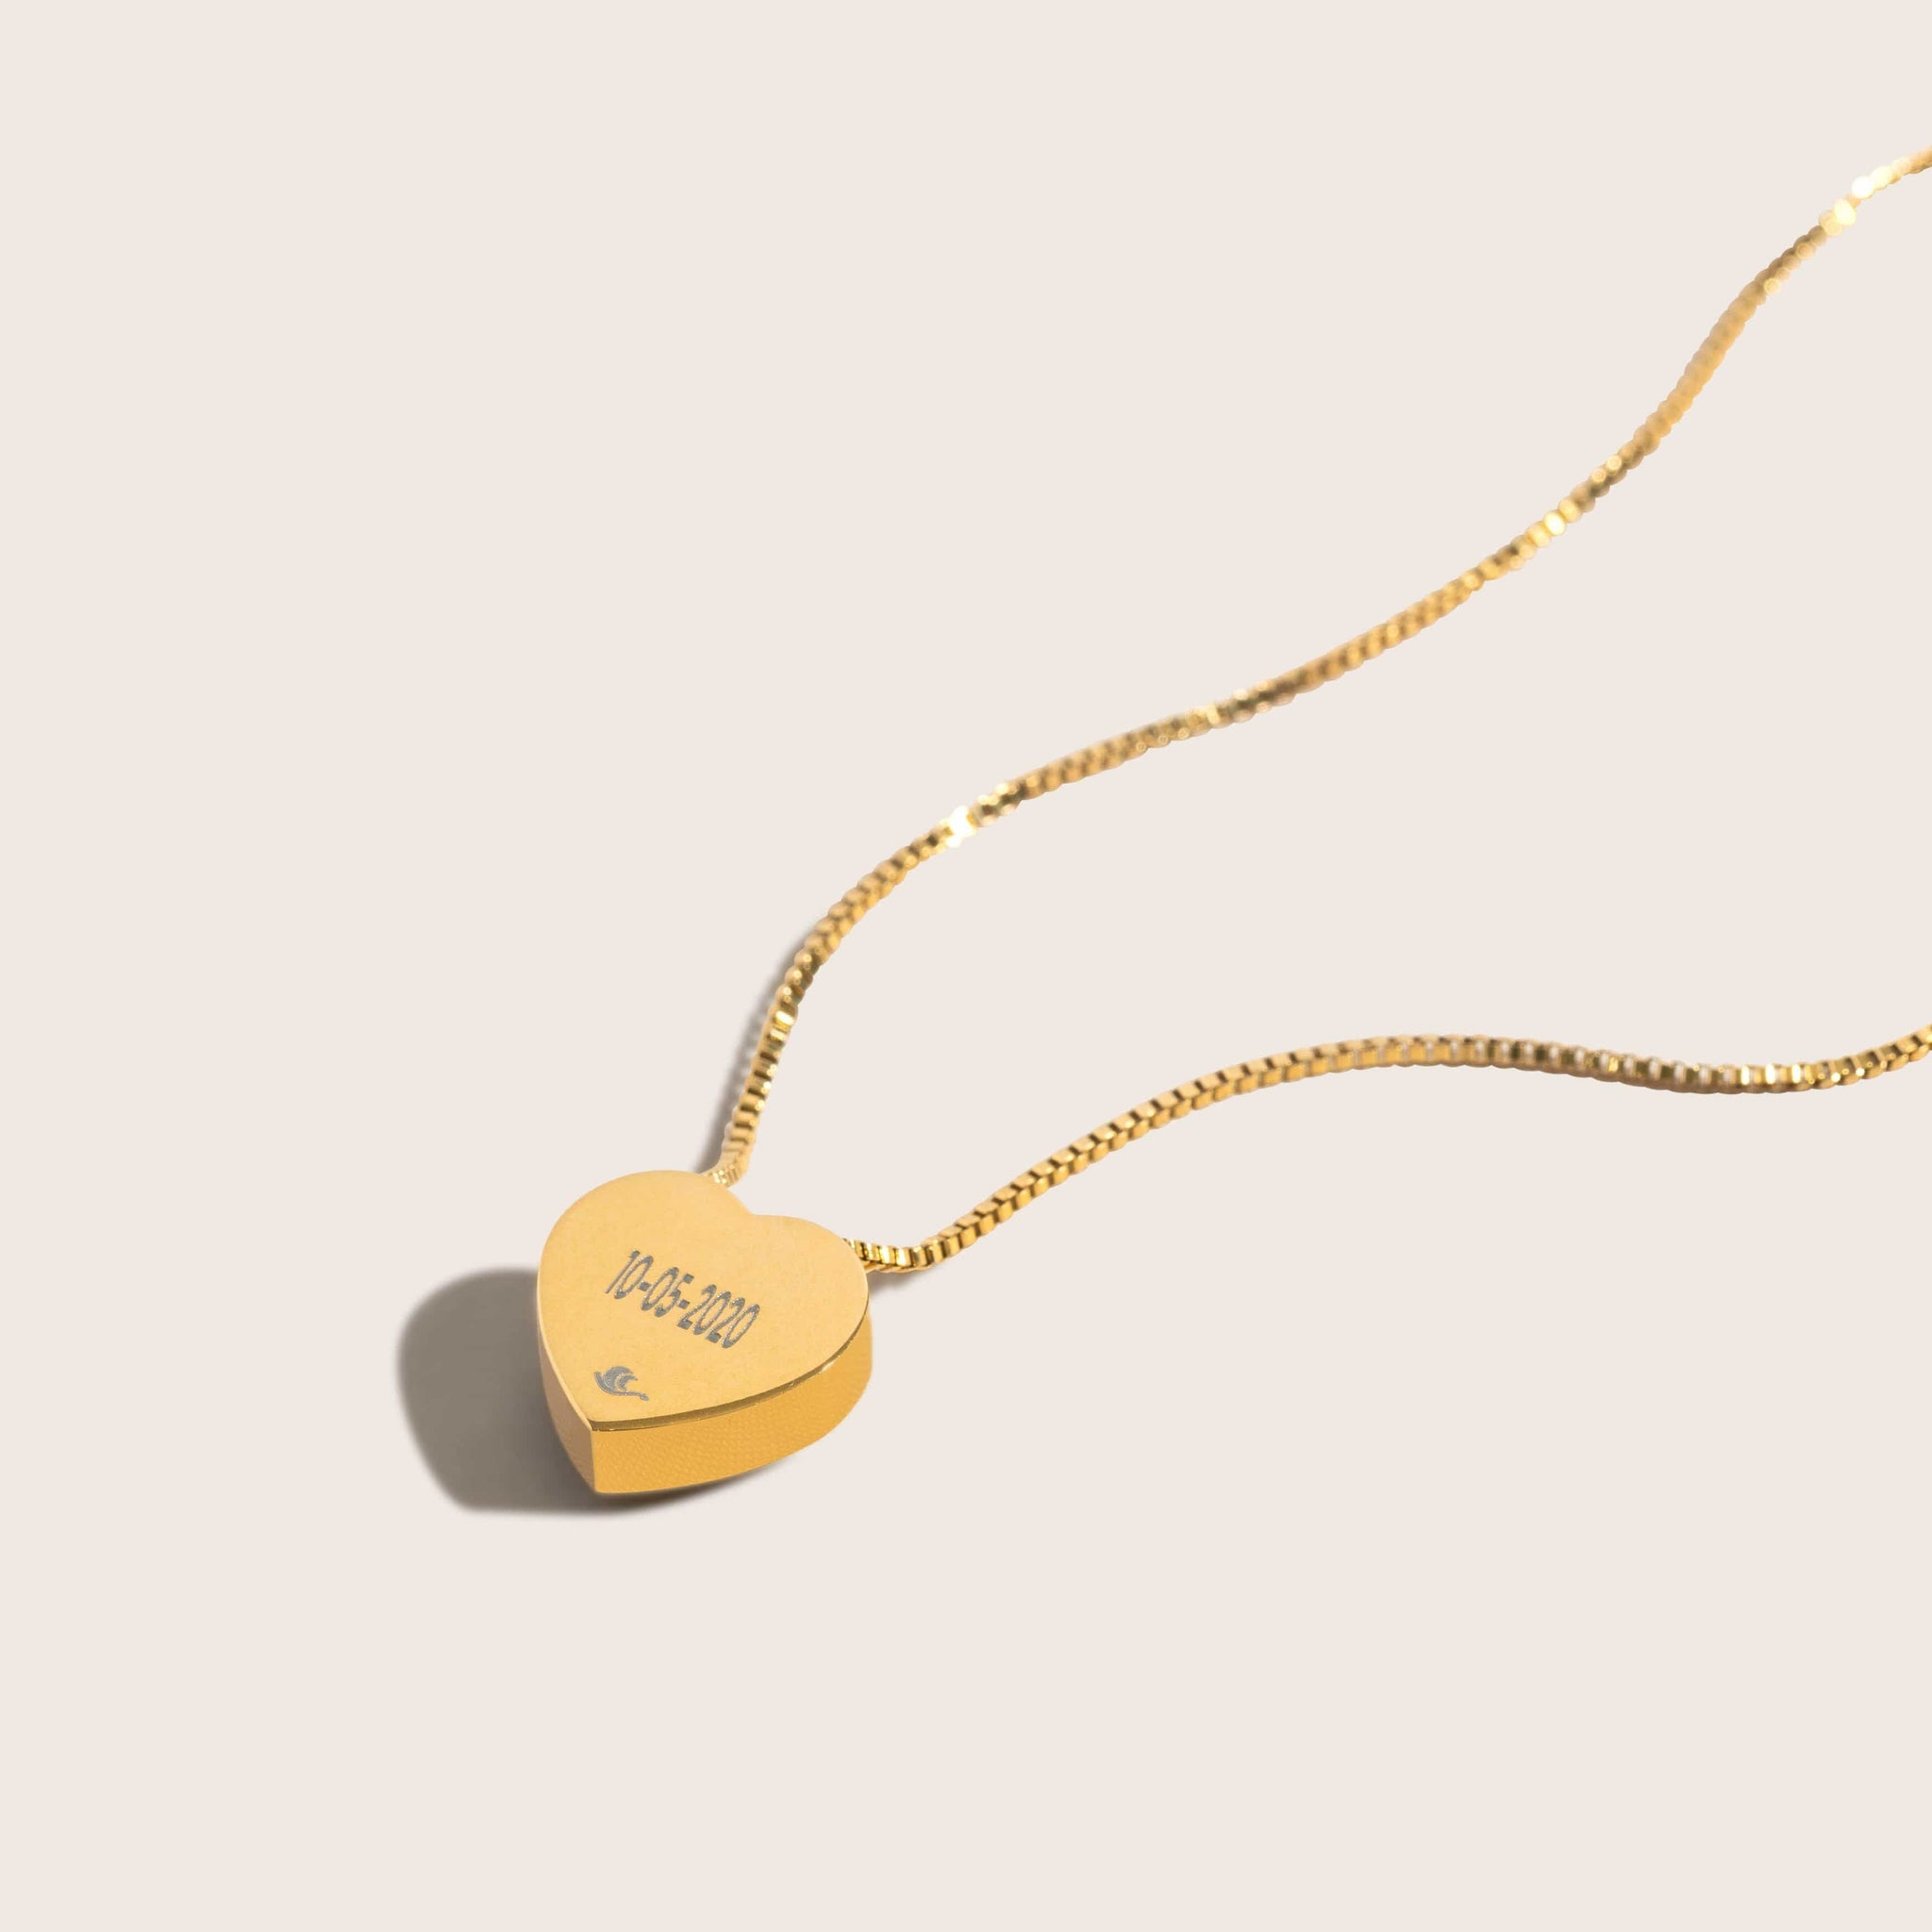 Pink Moon Wholesome Heart Necklace in Gold